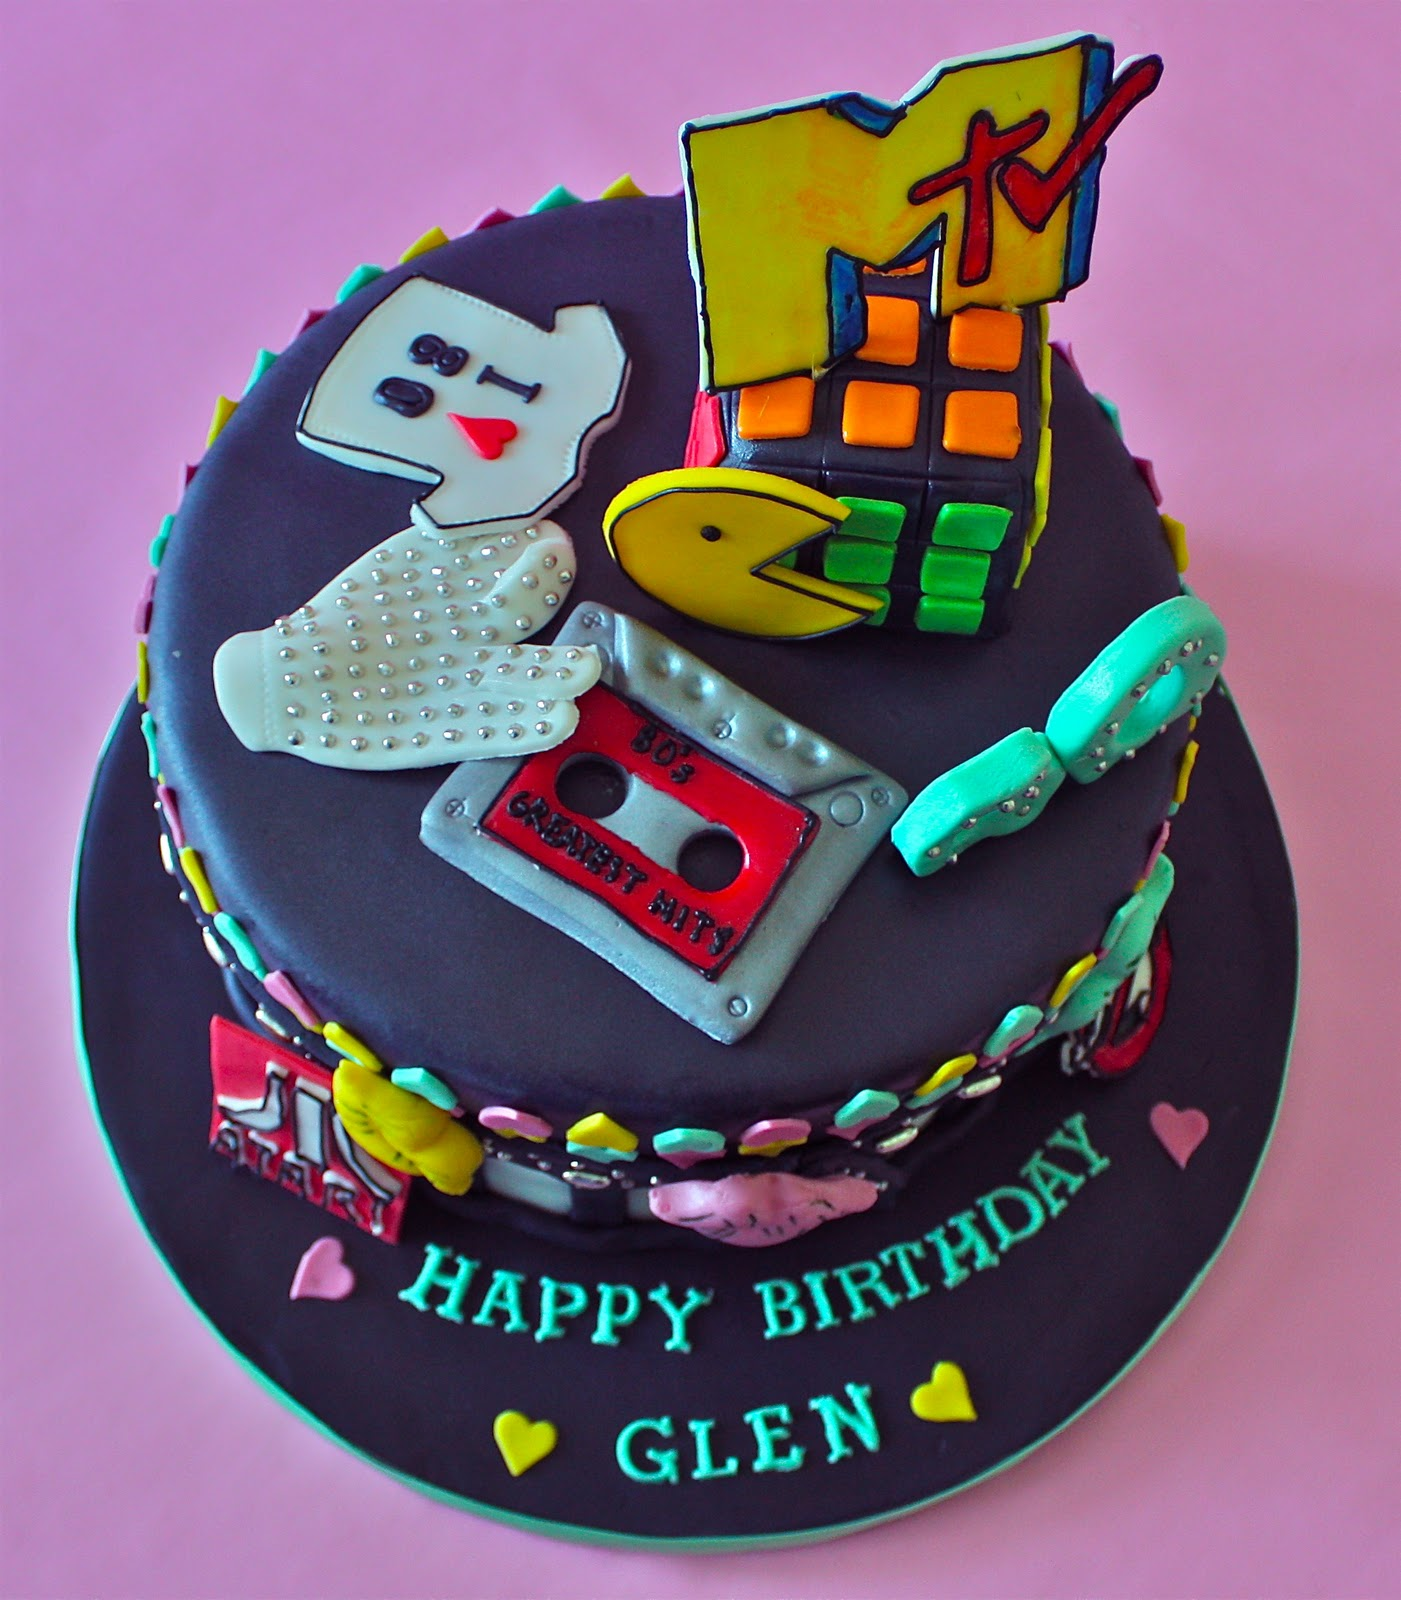 11 Photos of 80s Movies Themed Cakes